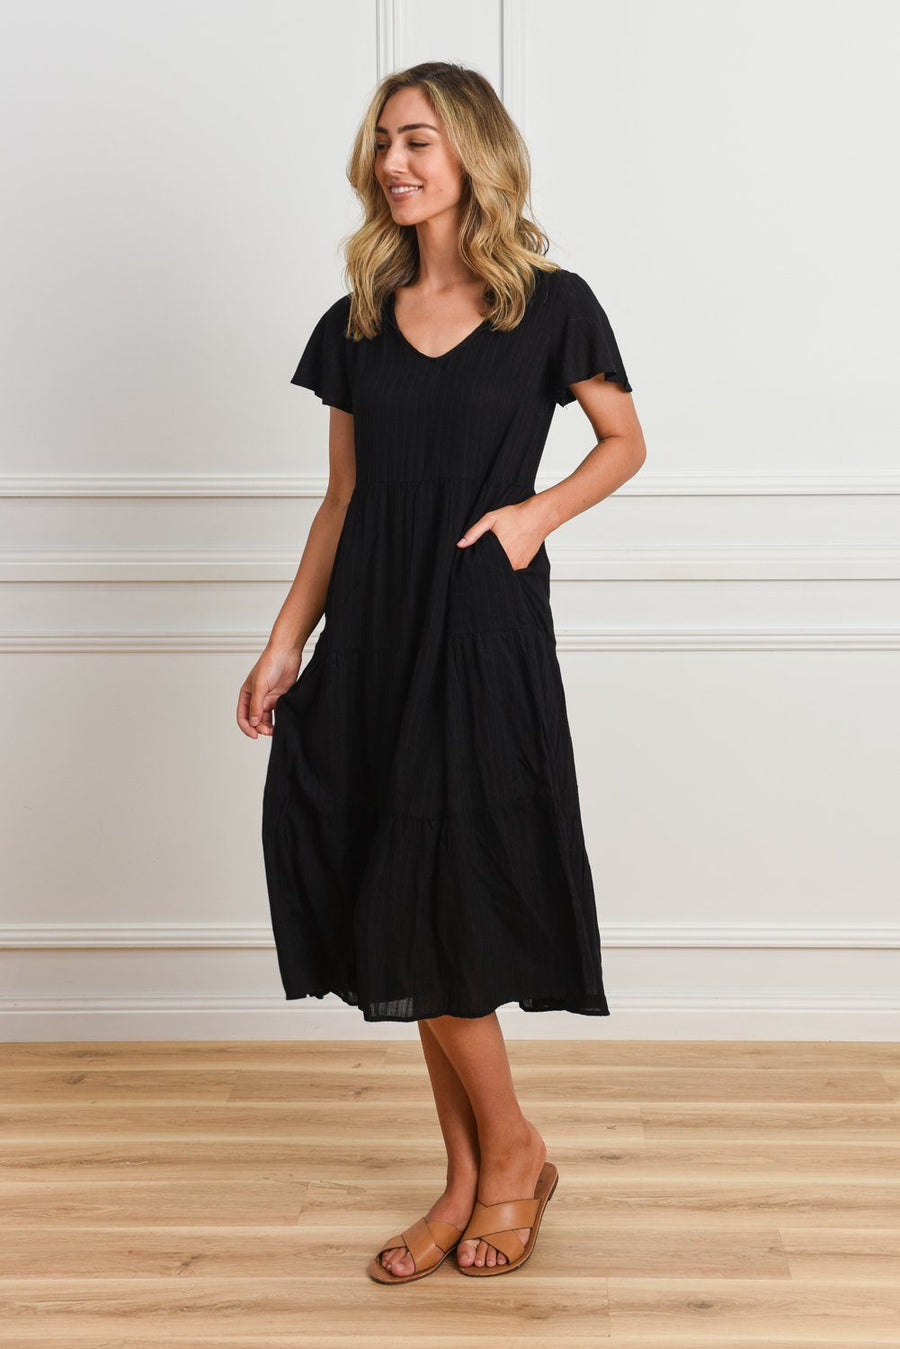 Bella Dress | Black Dress Gray Label